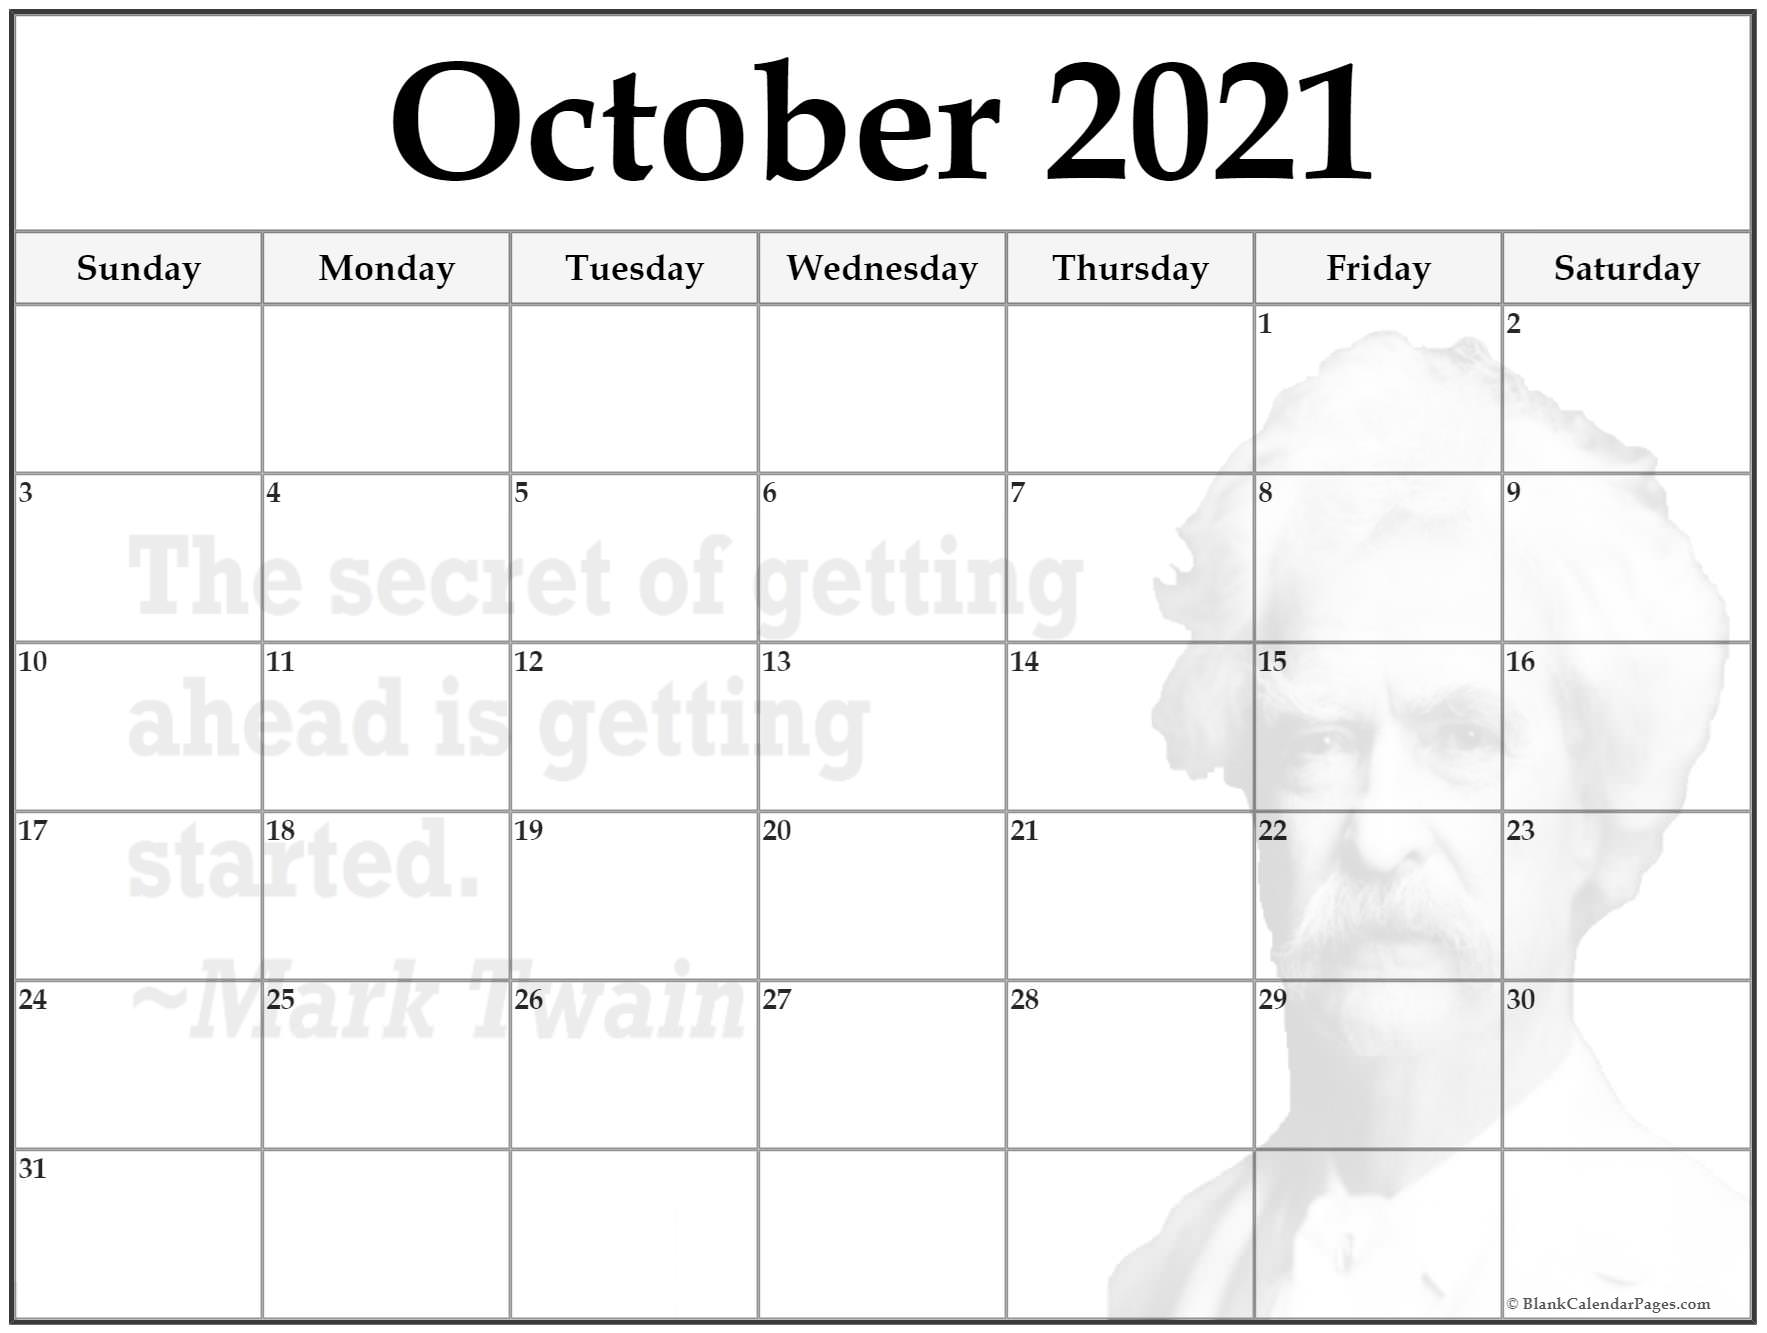 October 2019 printable quote calendar template. The secret of getting ahead is getting started. ~Mark Twain